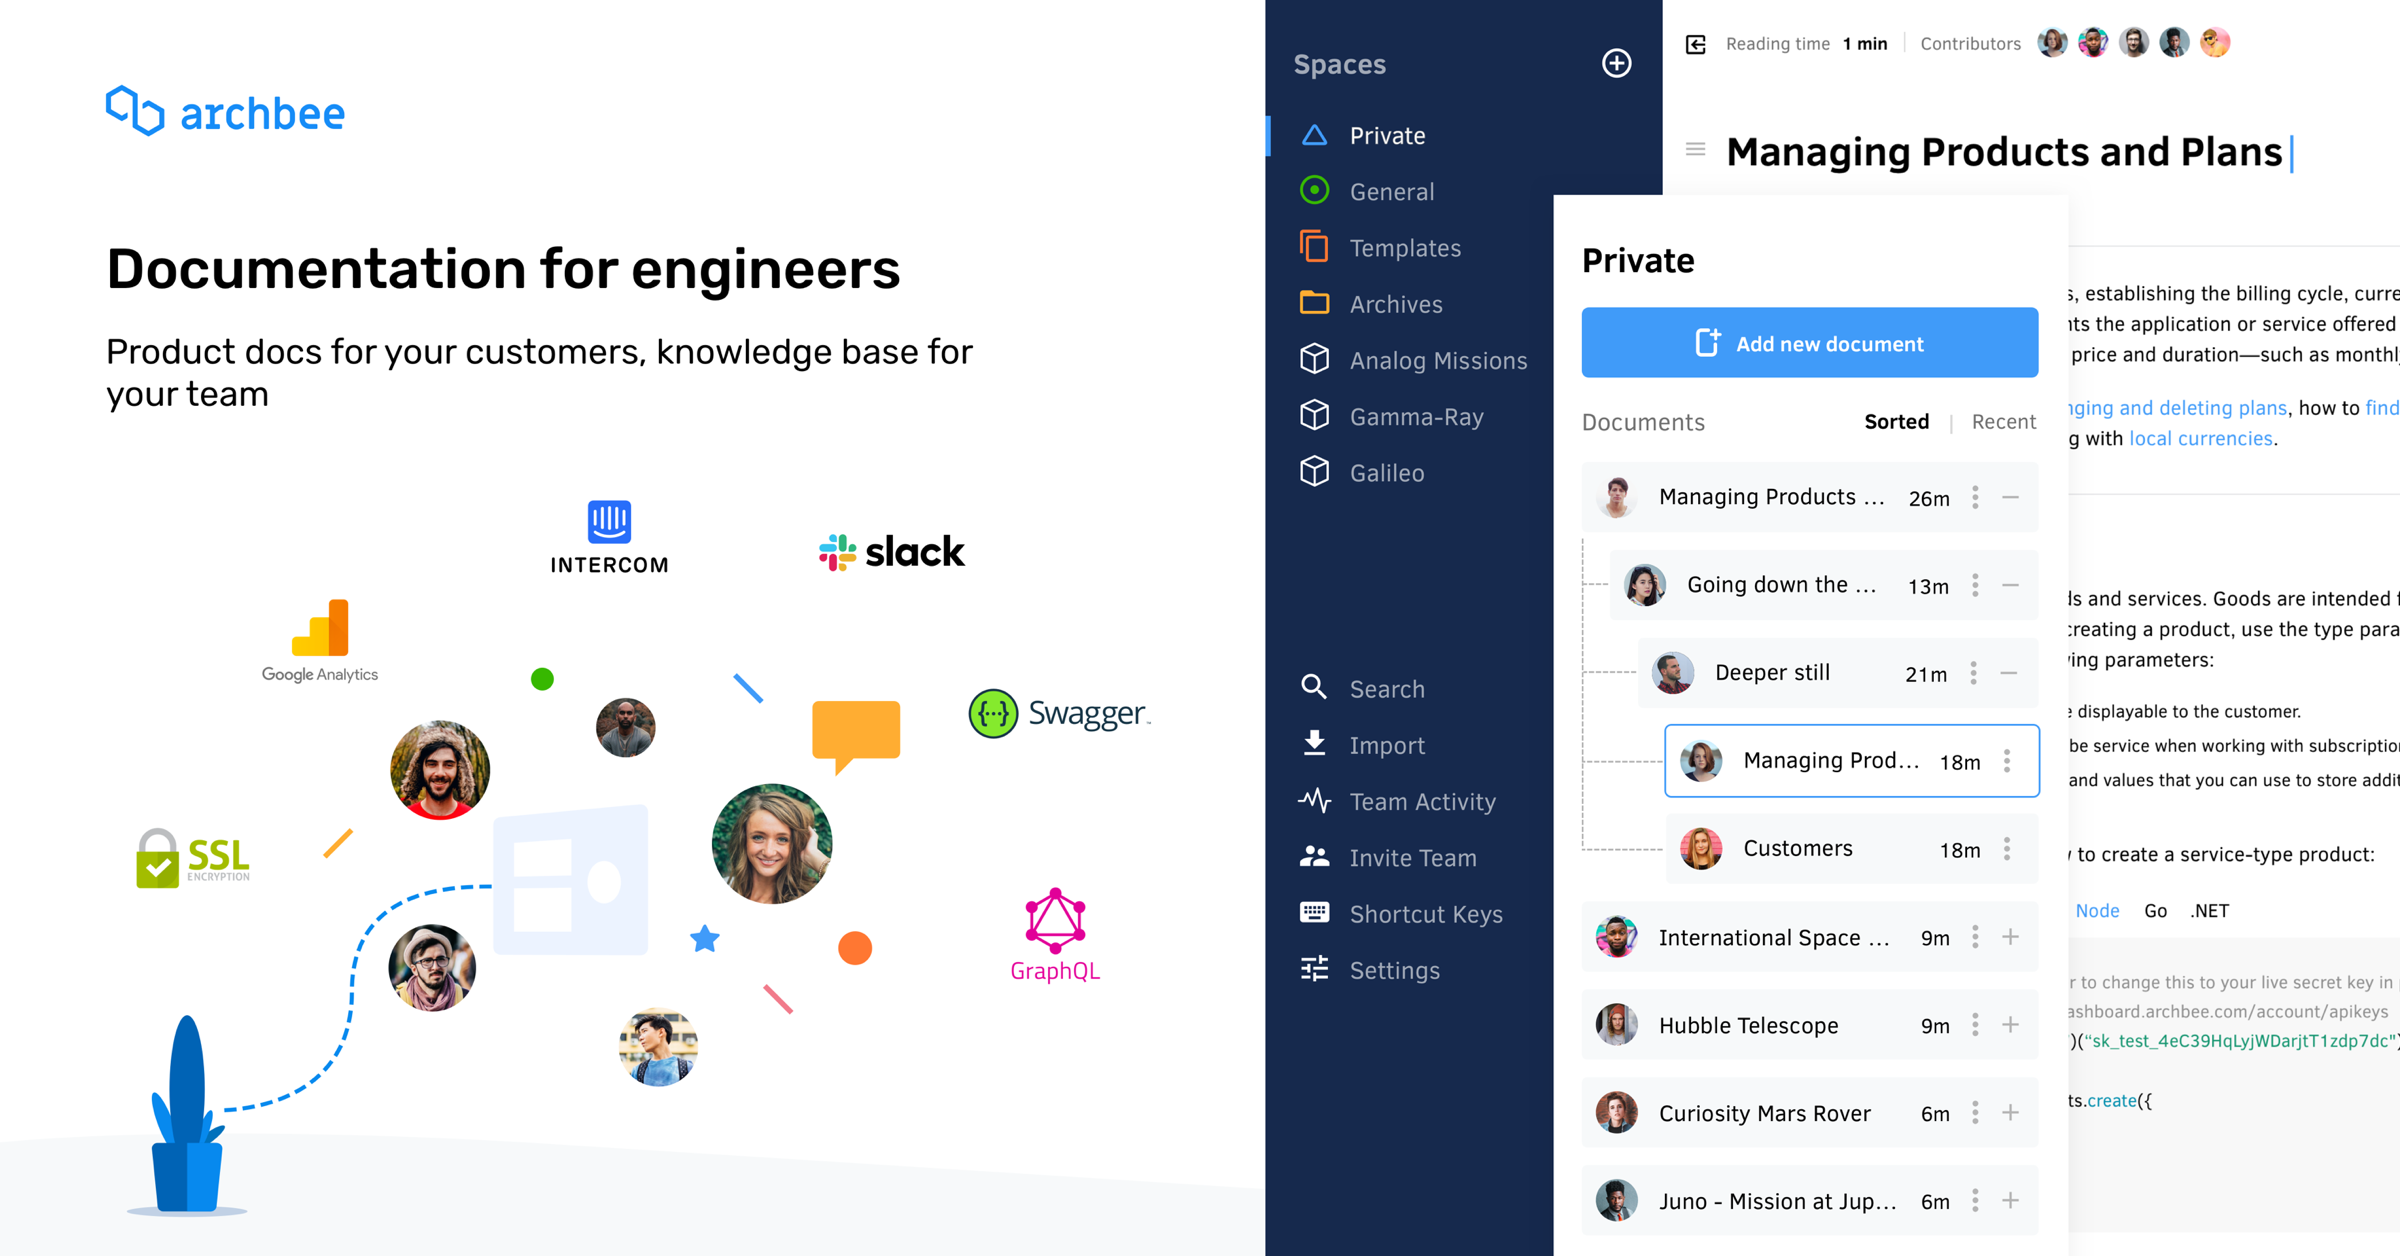 Archbee is a  knowledge management system for technical teams